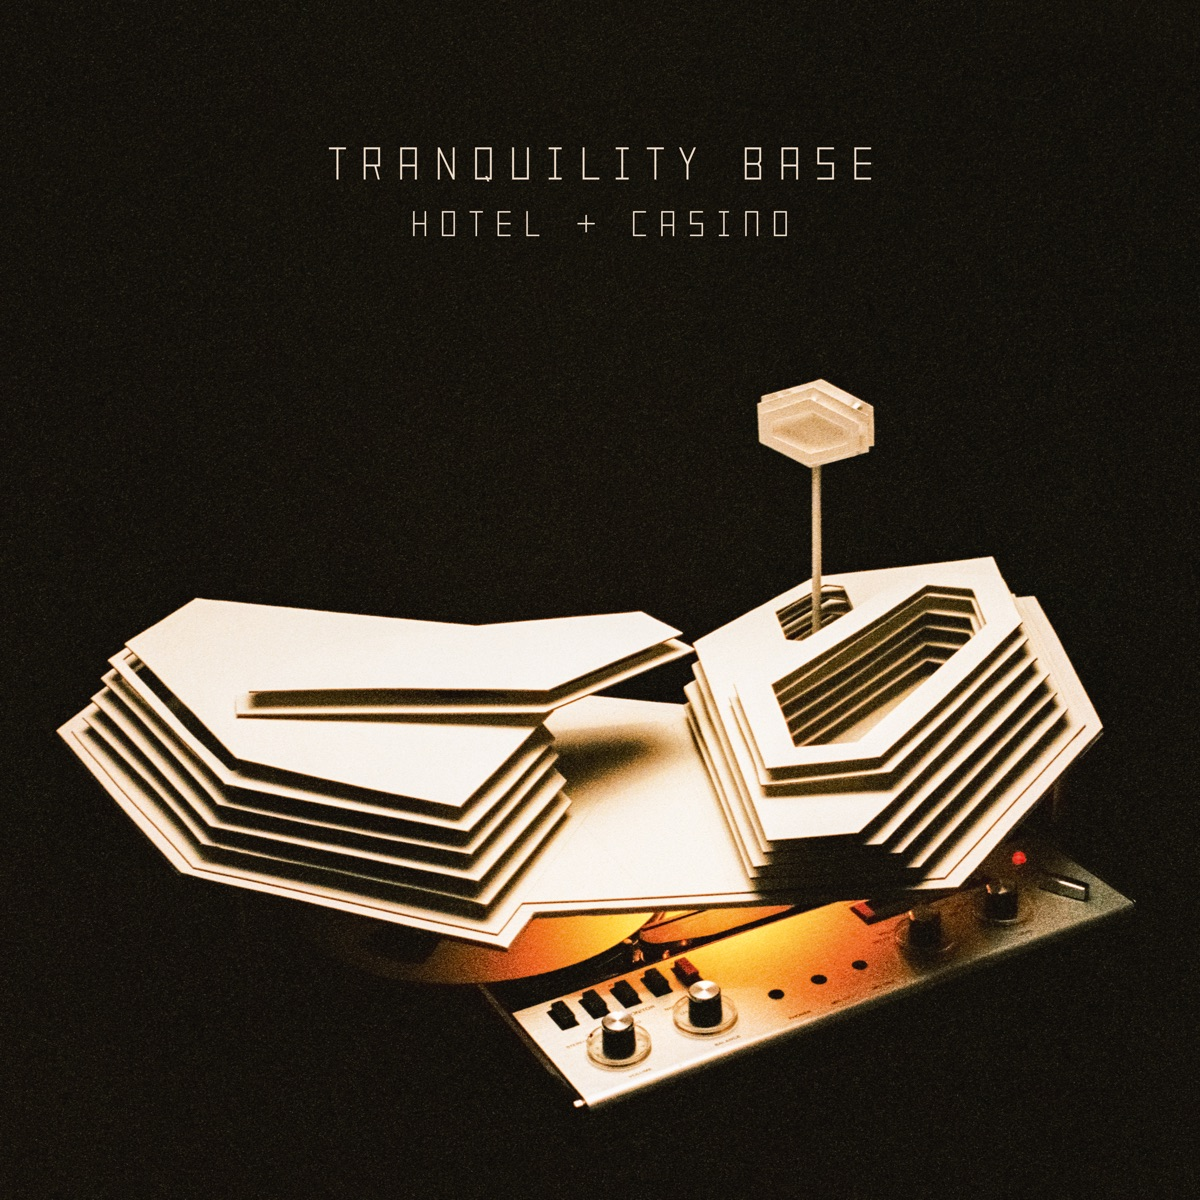 Tranquility Base Hotel  Casino Arctic Monkeys CD cover